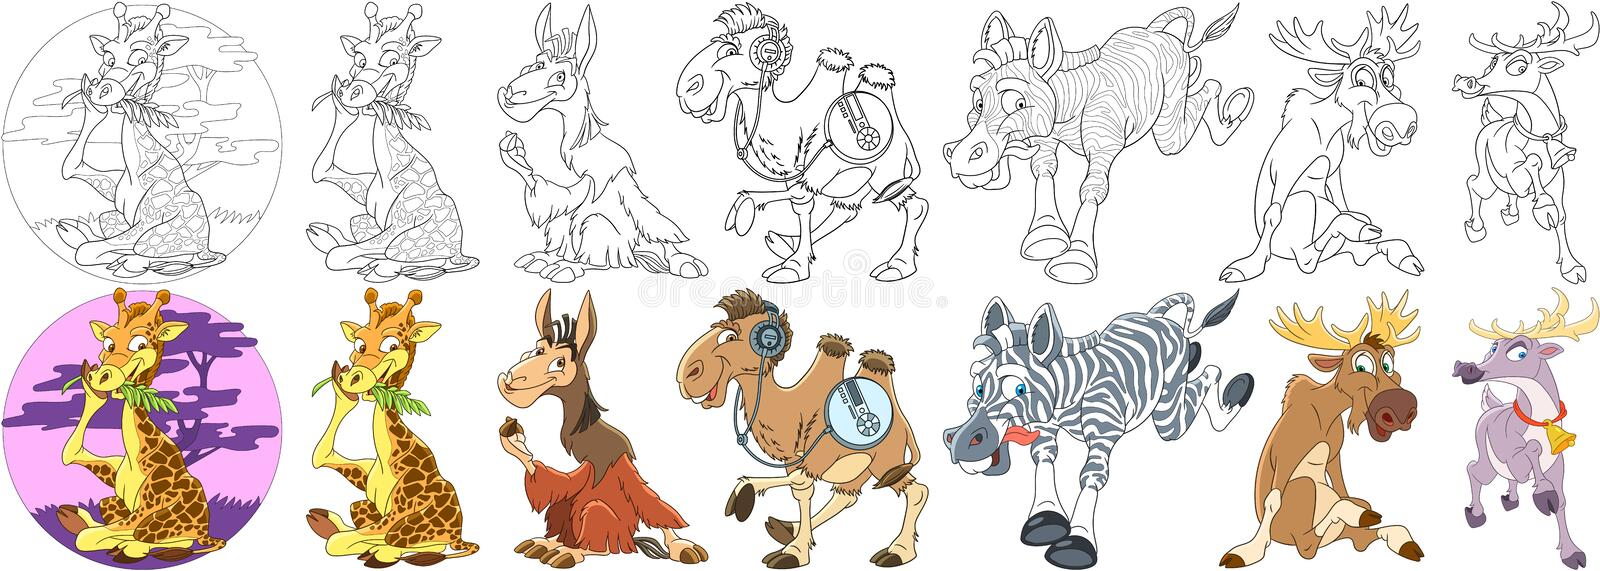 Cartoon hoofed animals set royalty free stock photo